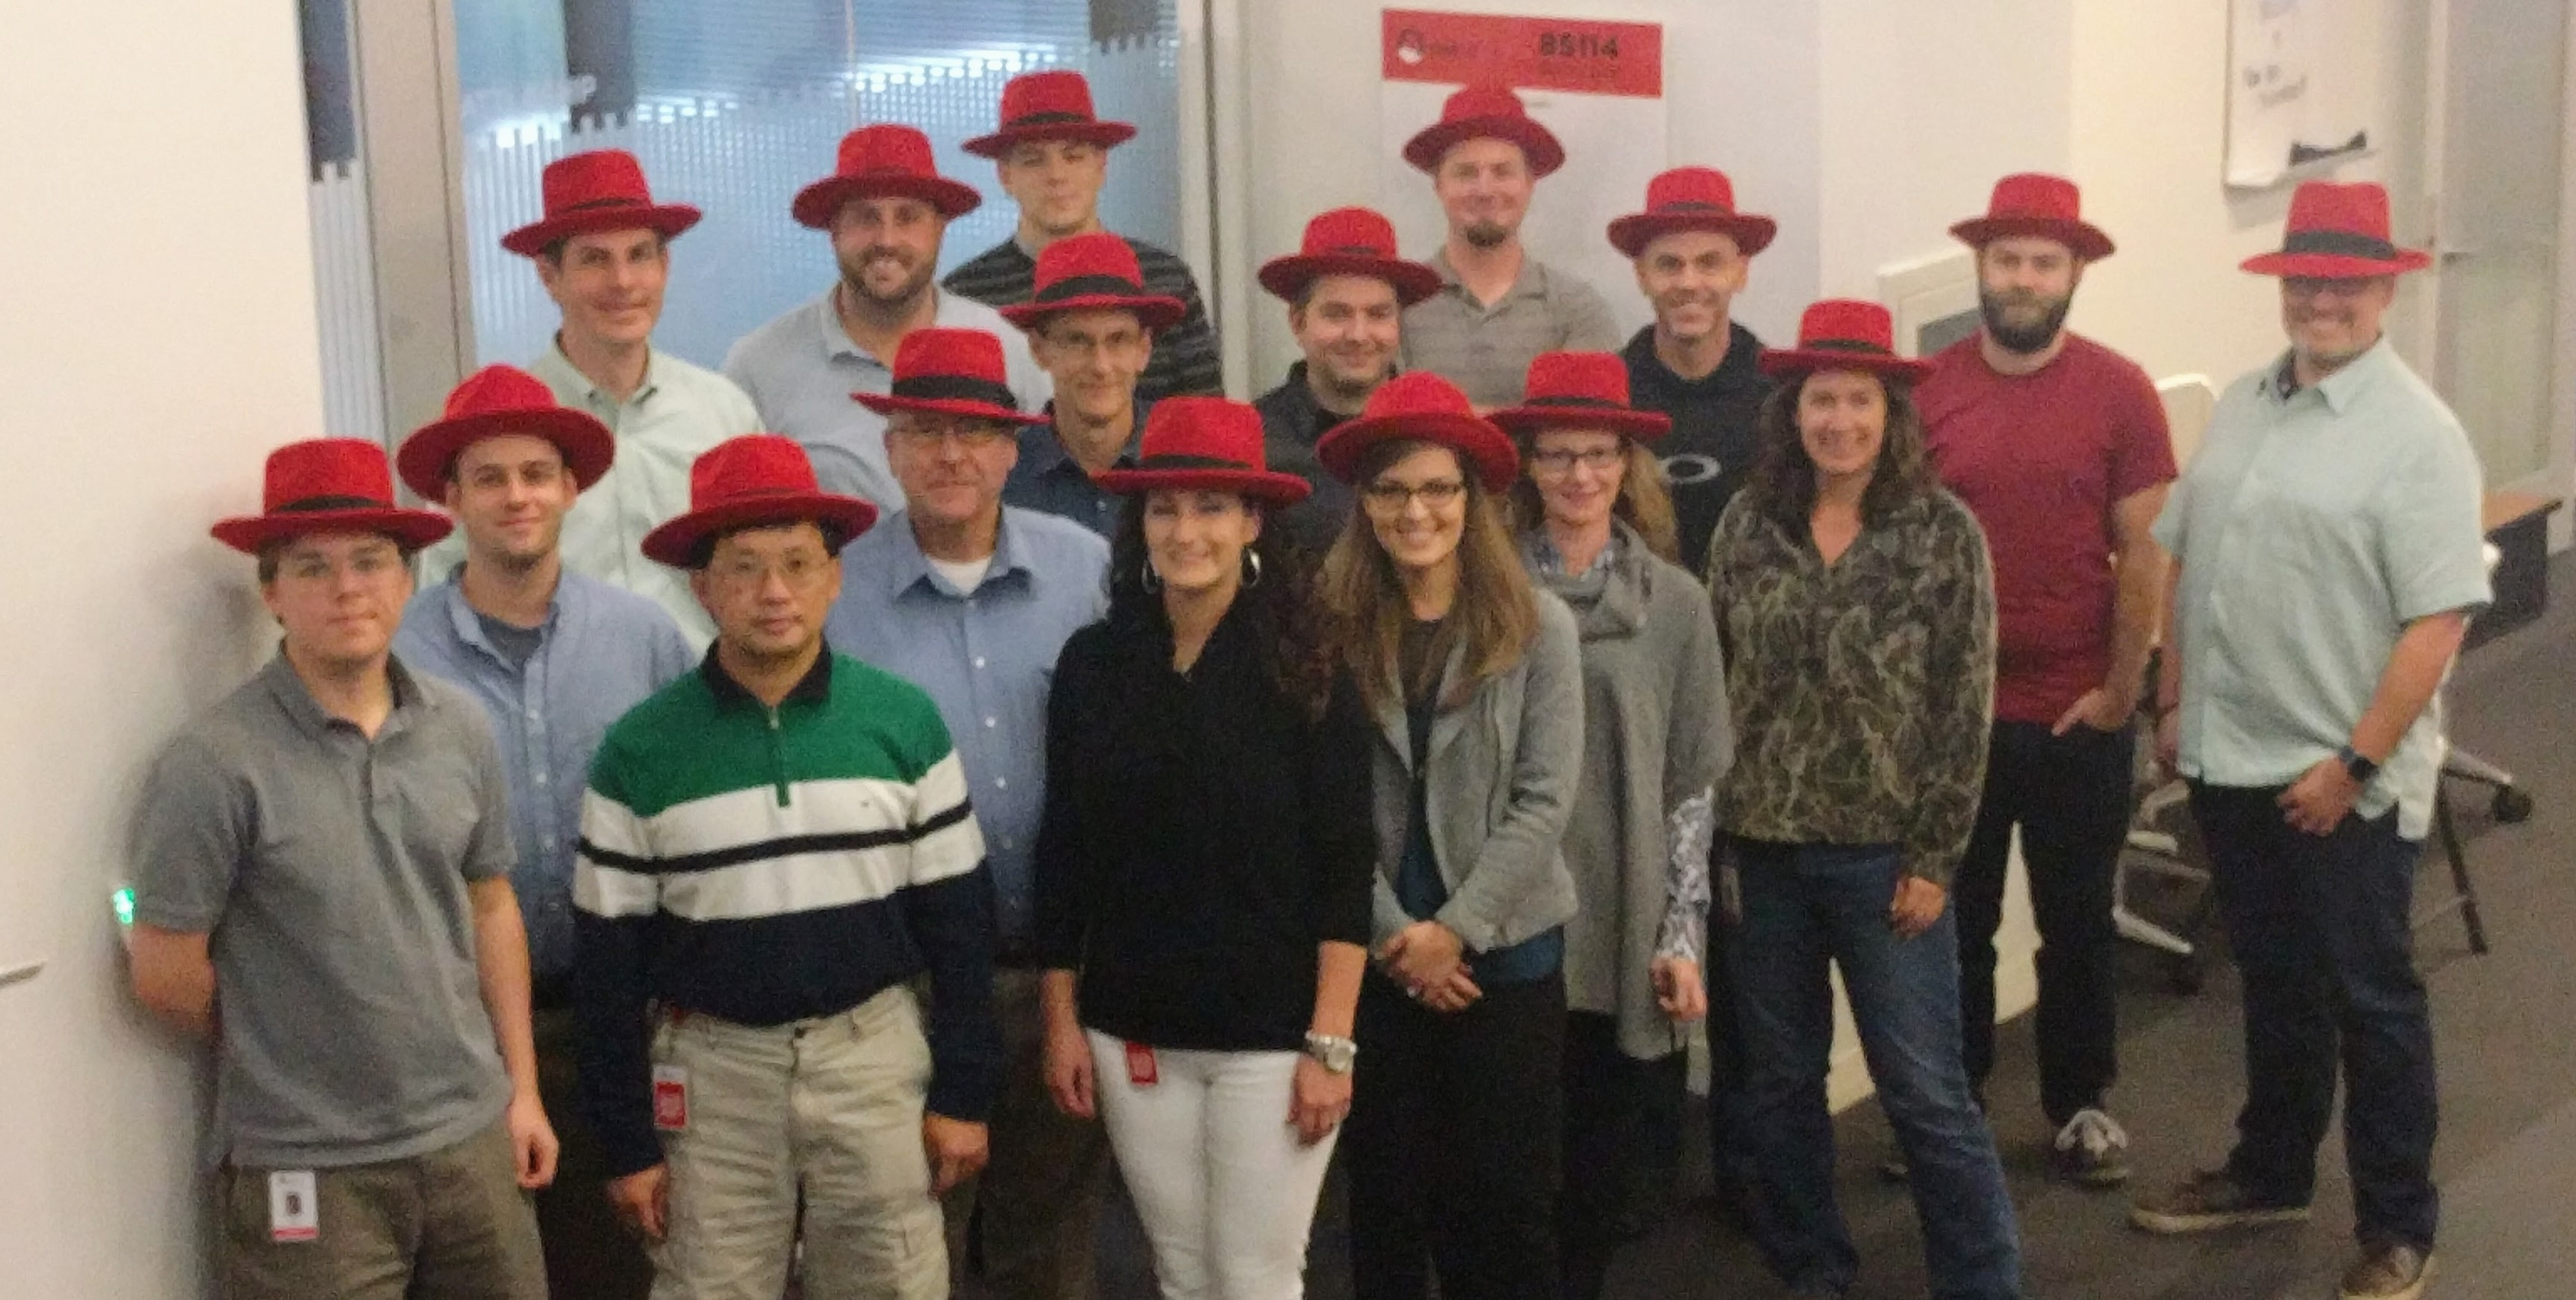 Picture of group of new hires wearing red fedoras.